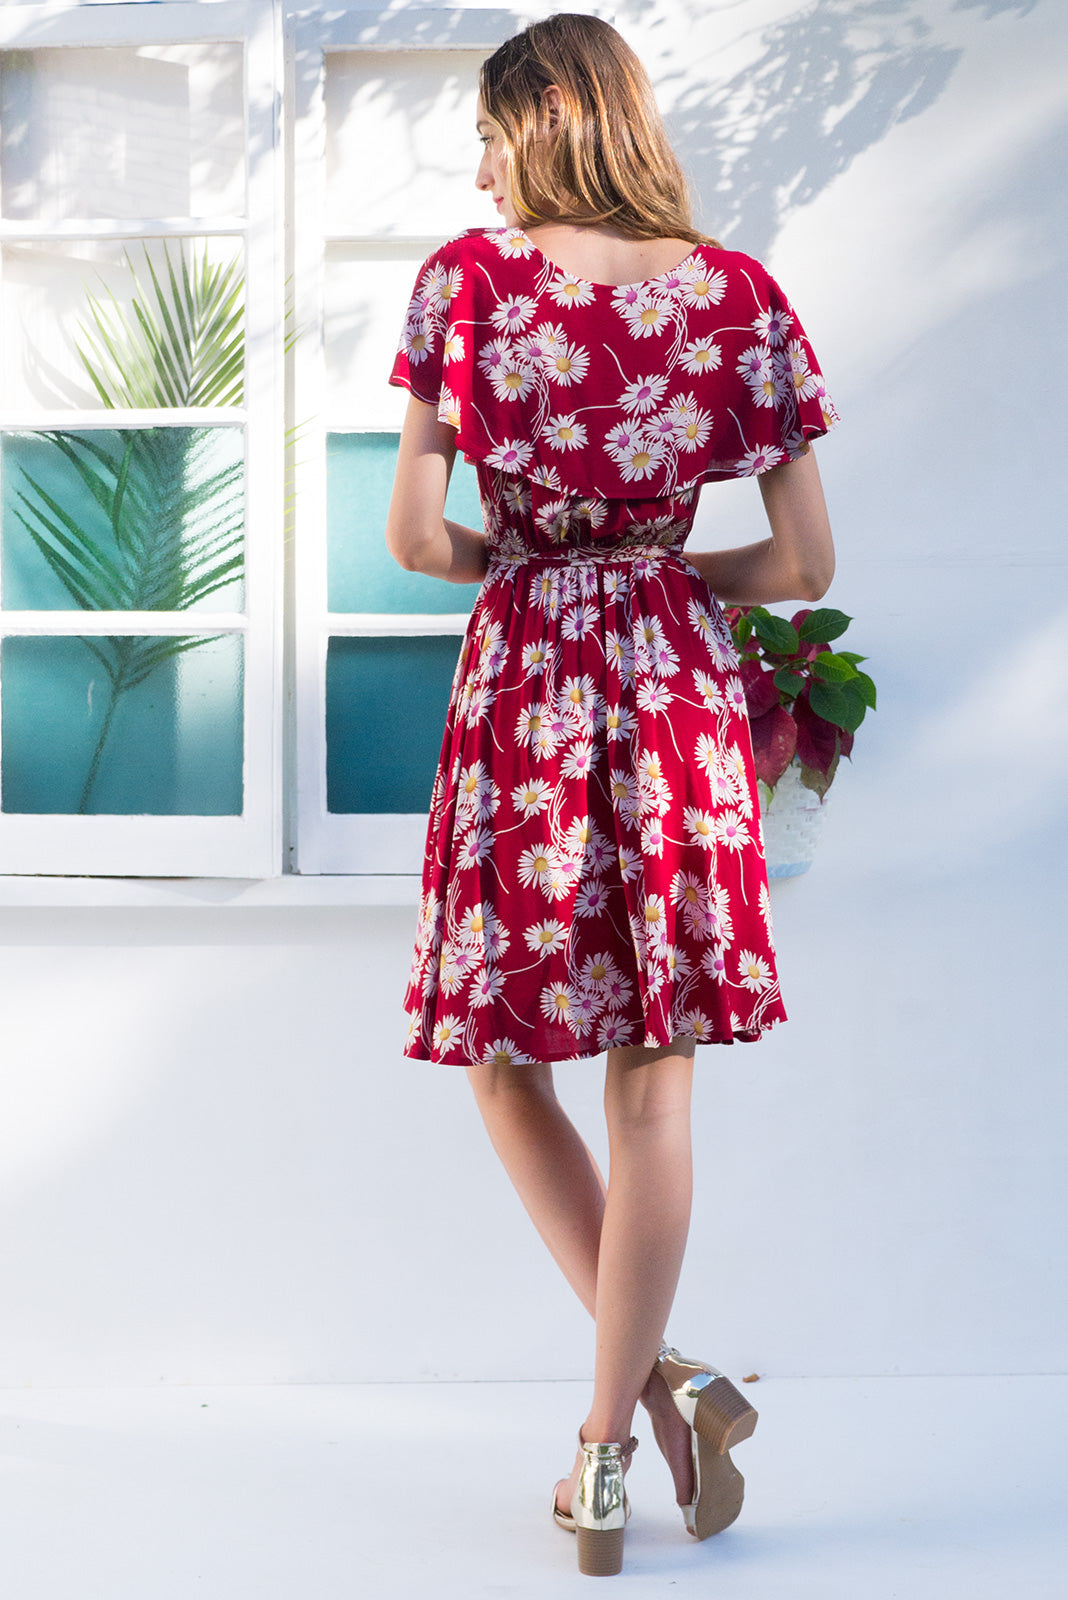 Rita Rio Red Daisy Wrap Dress with a full frill around the neck and sleeve in a bright red daisy print on rayon